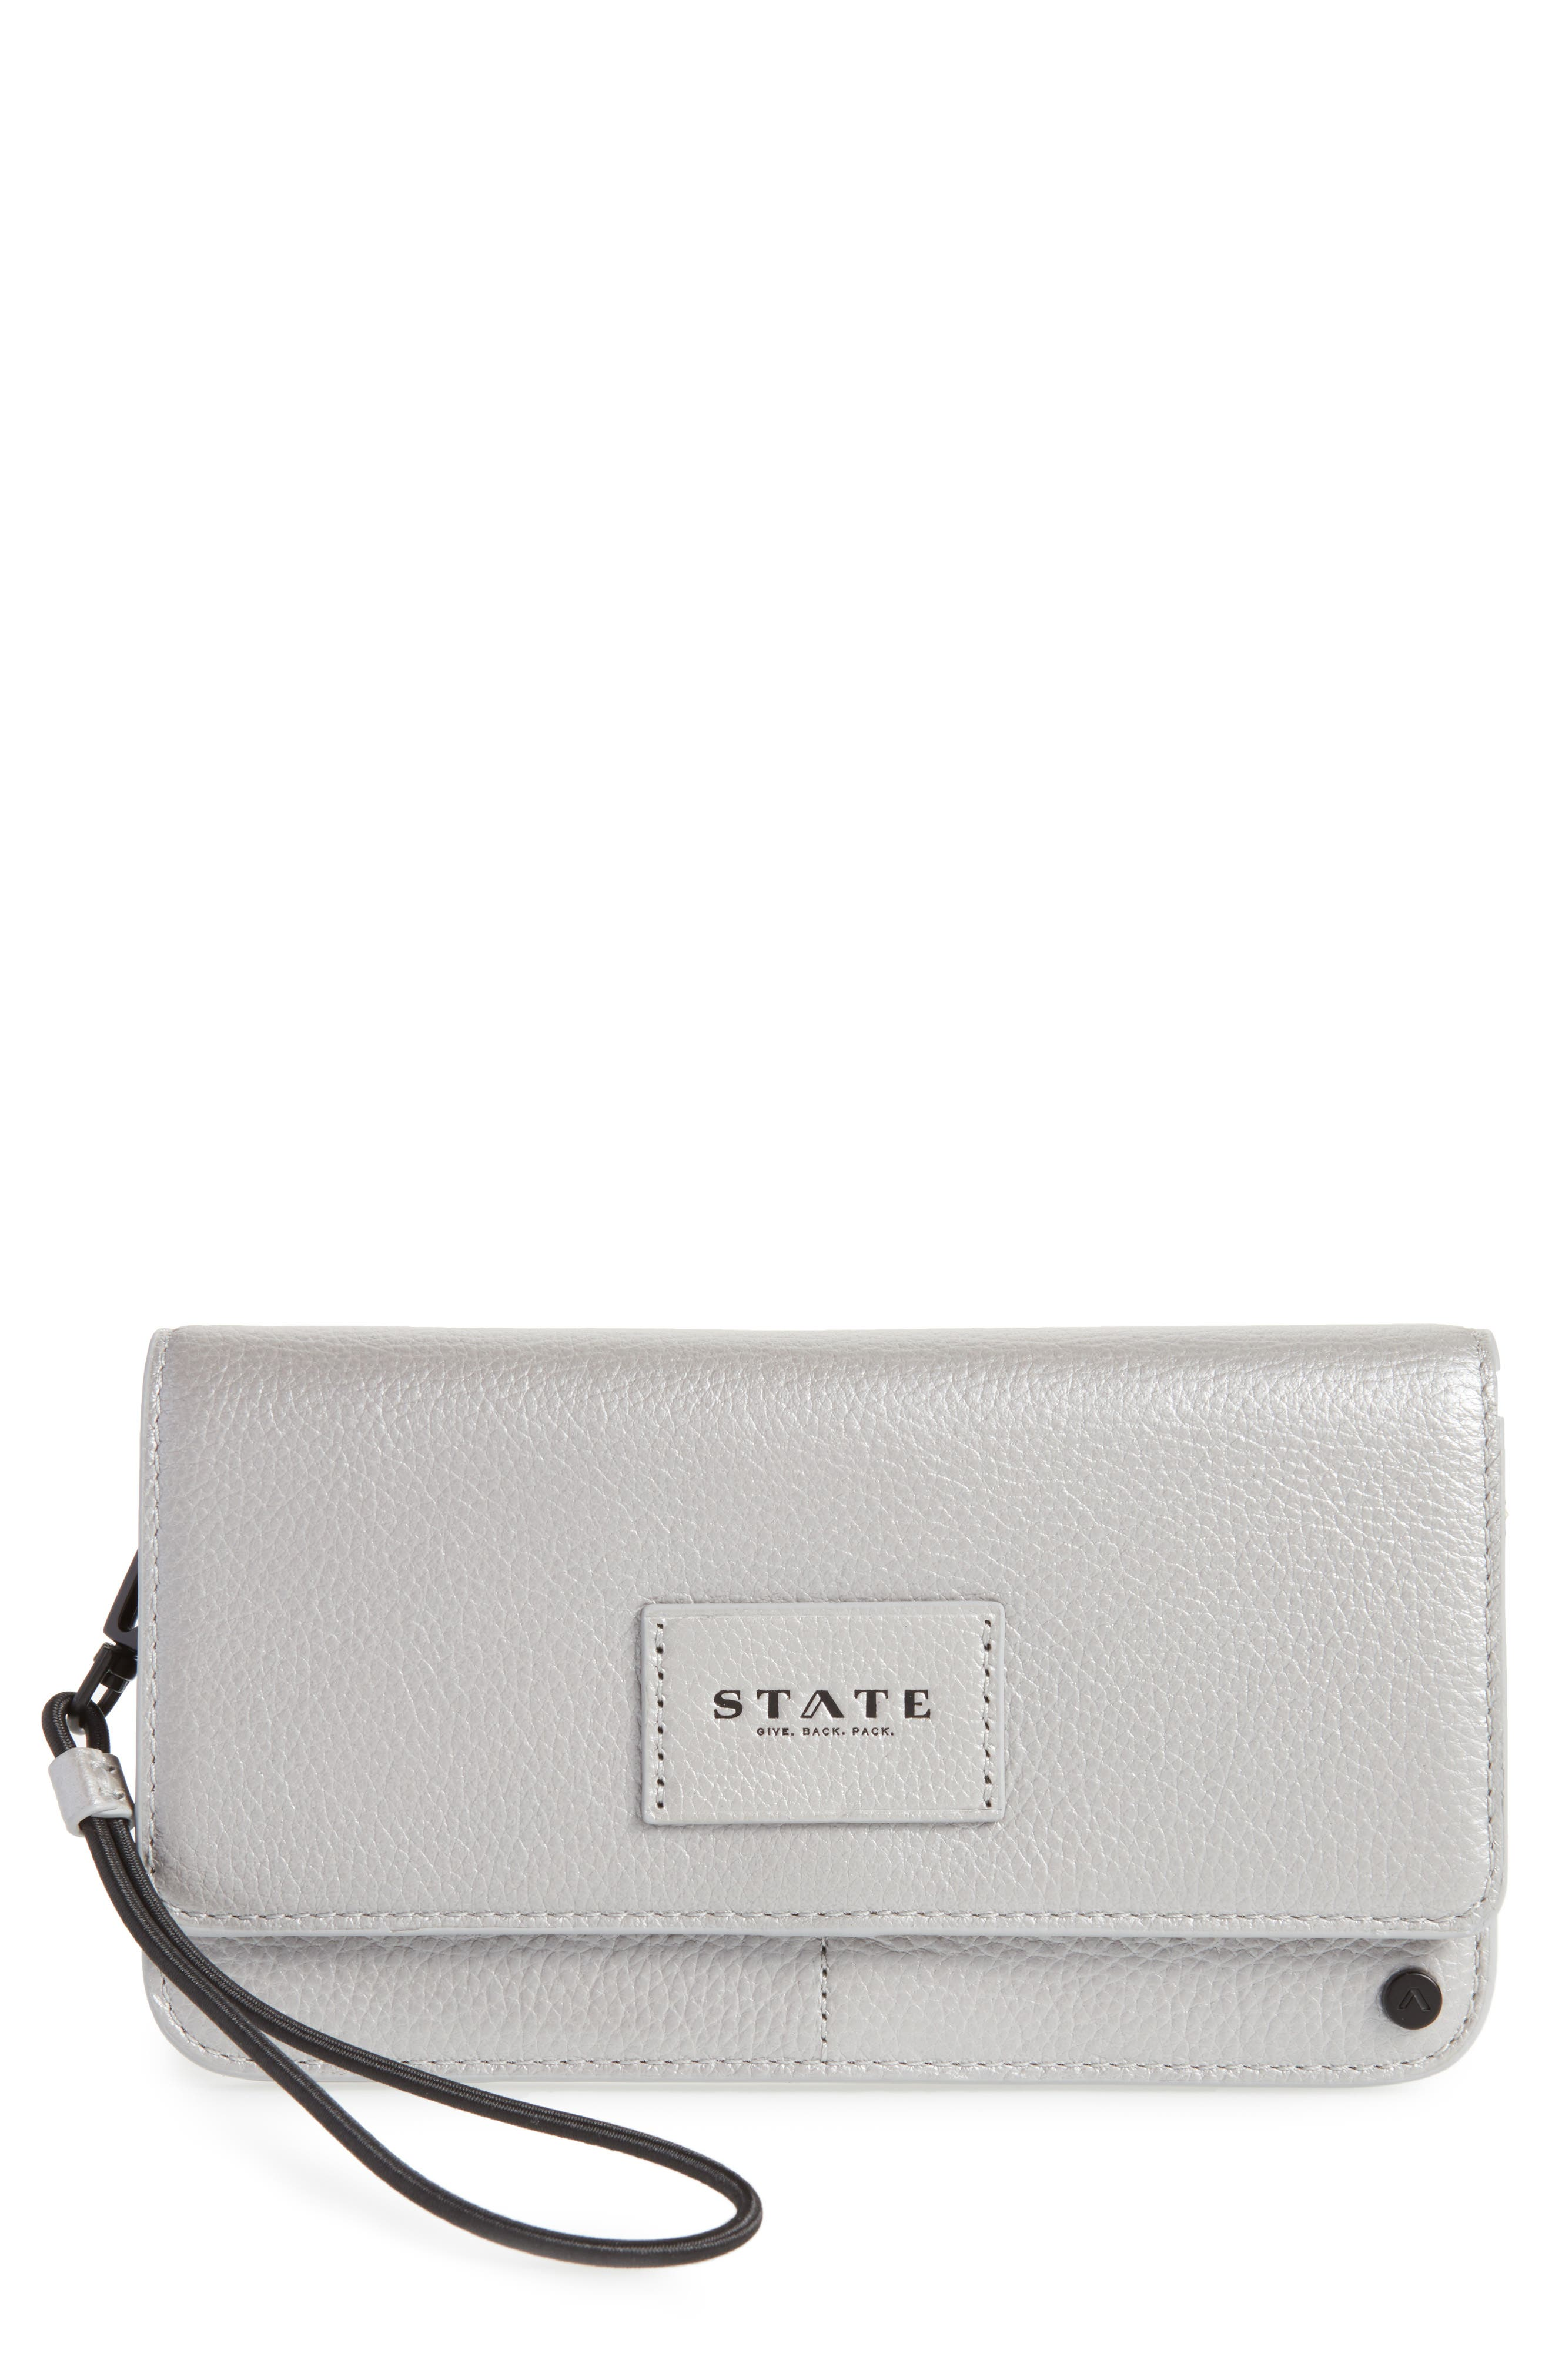 Greenwood Bristol Leather Wristlet,                         Main,                         color, Silver